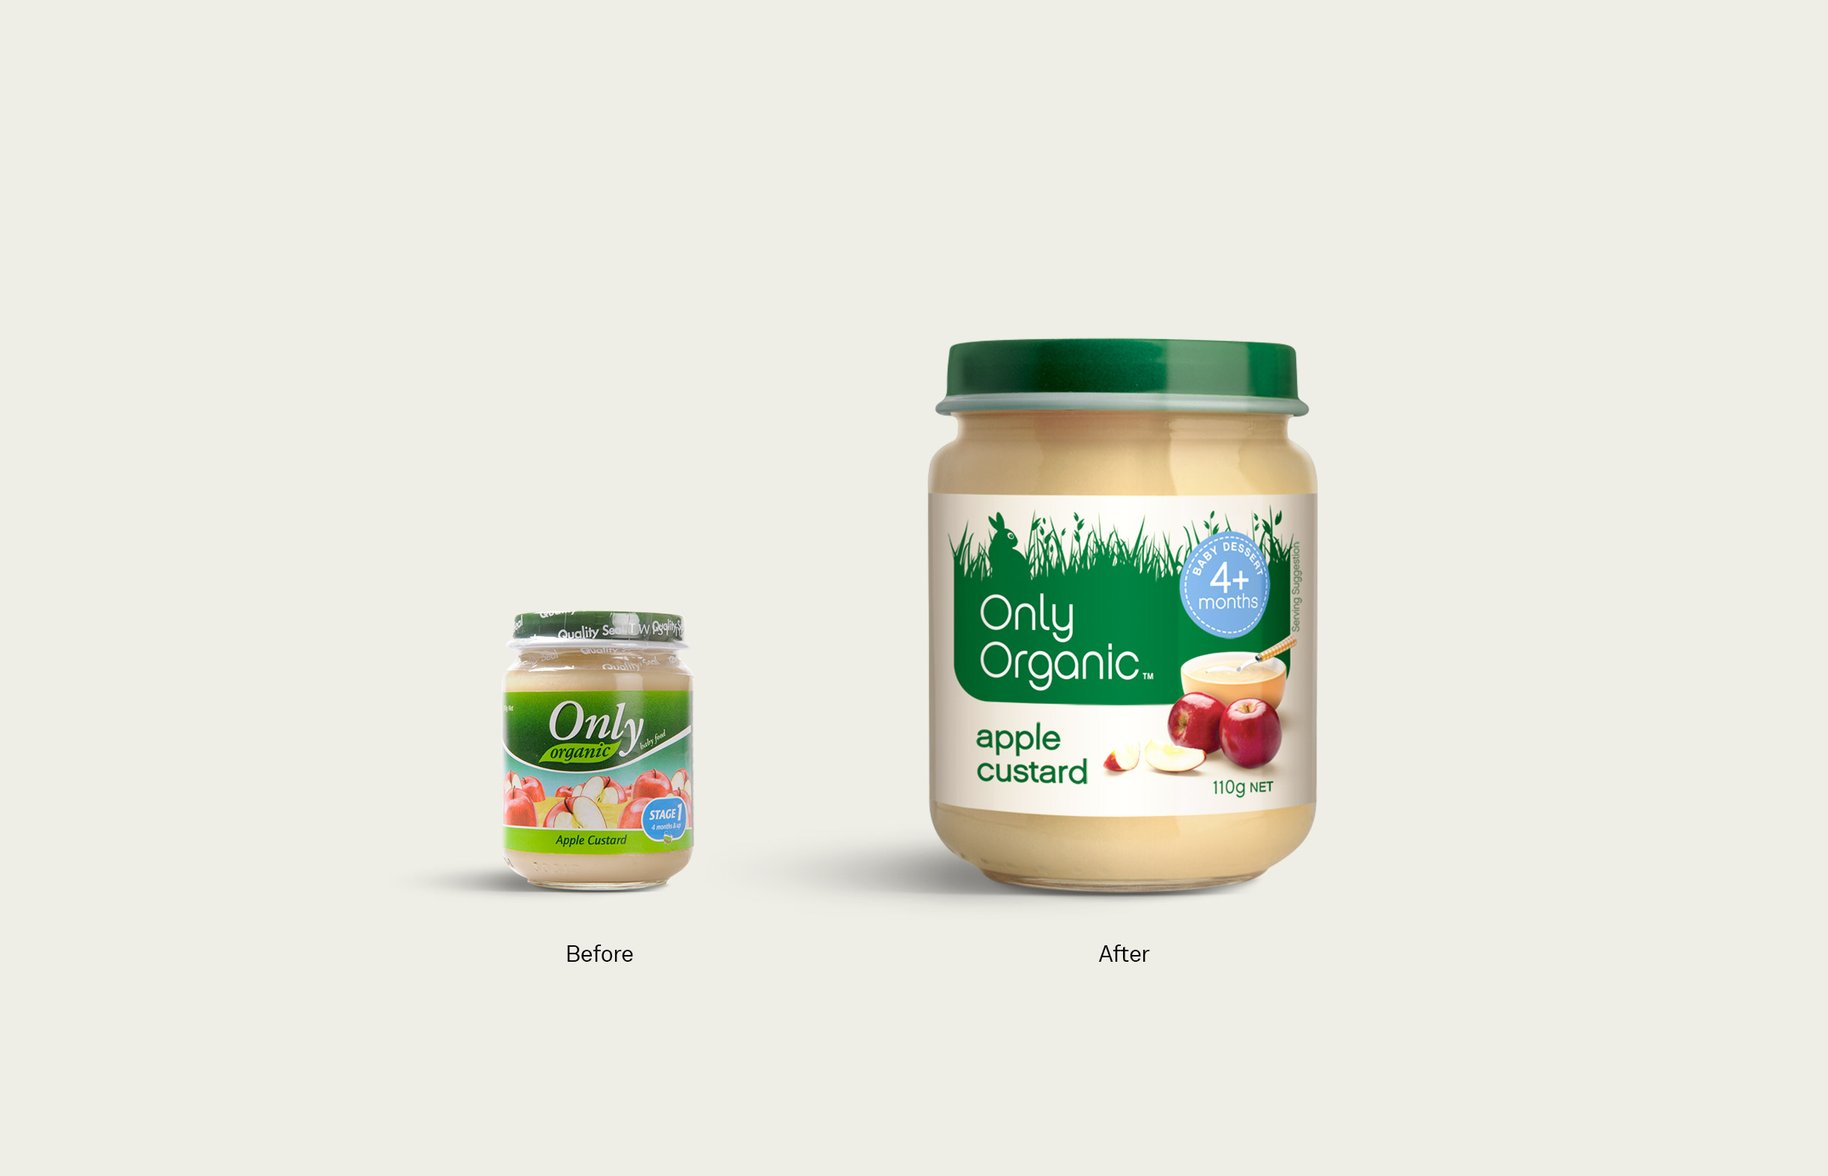 Only Organic baby food jar packaging before and after